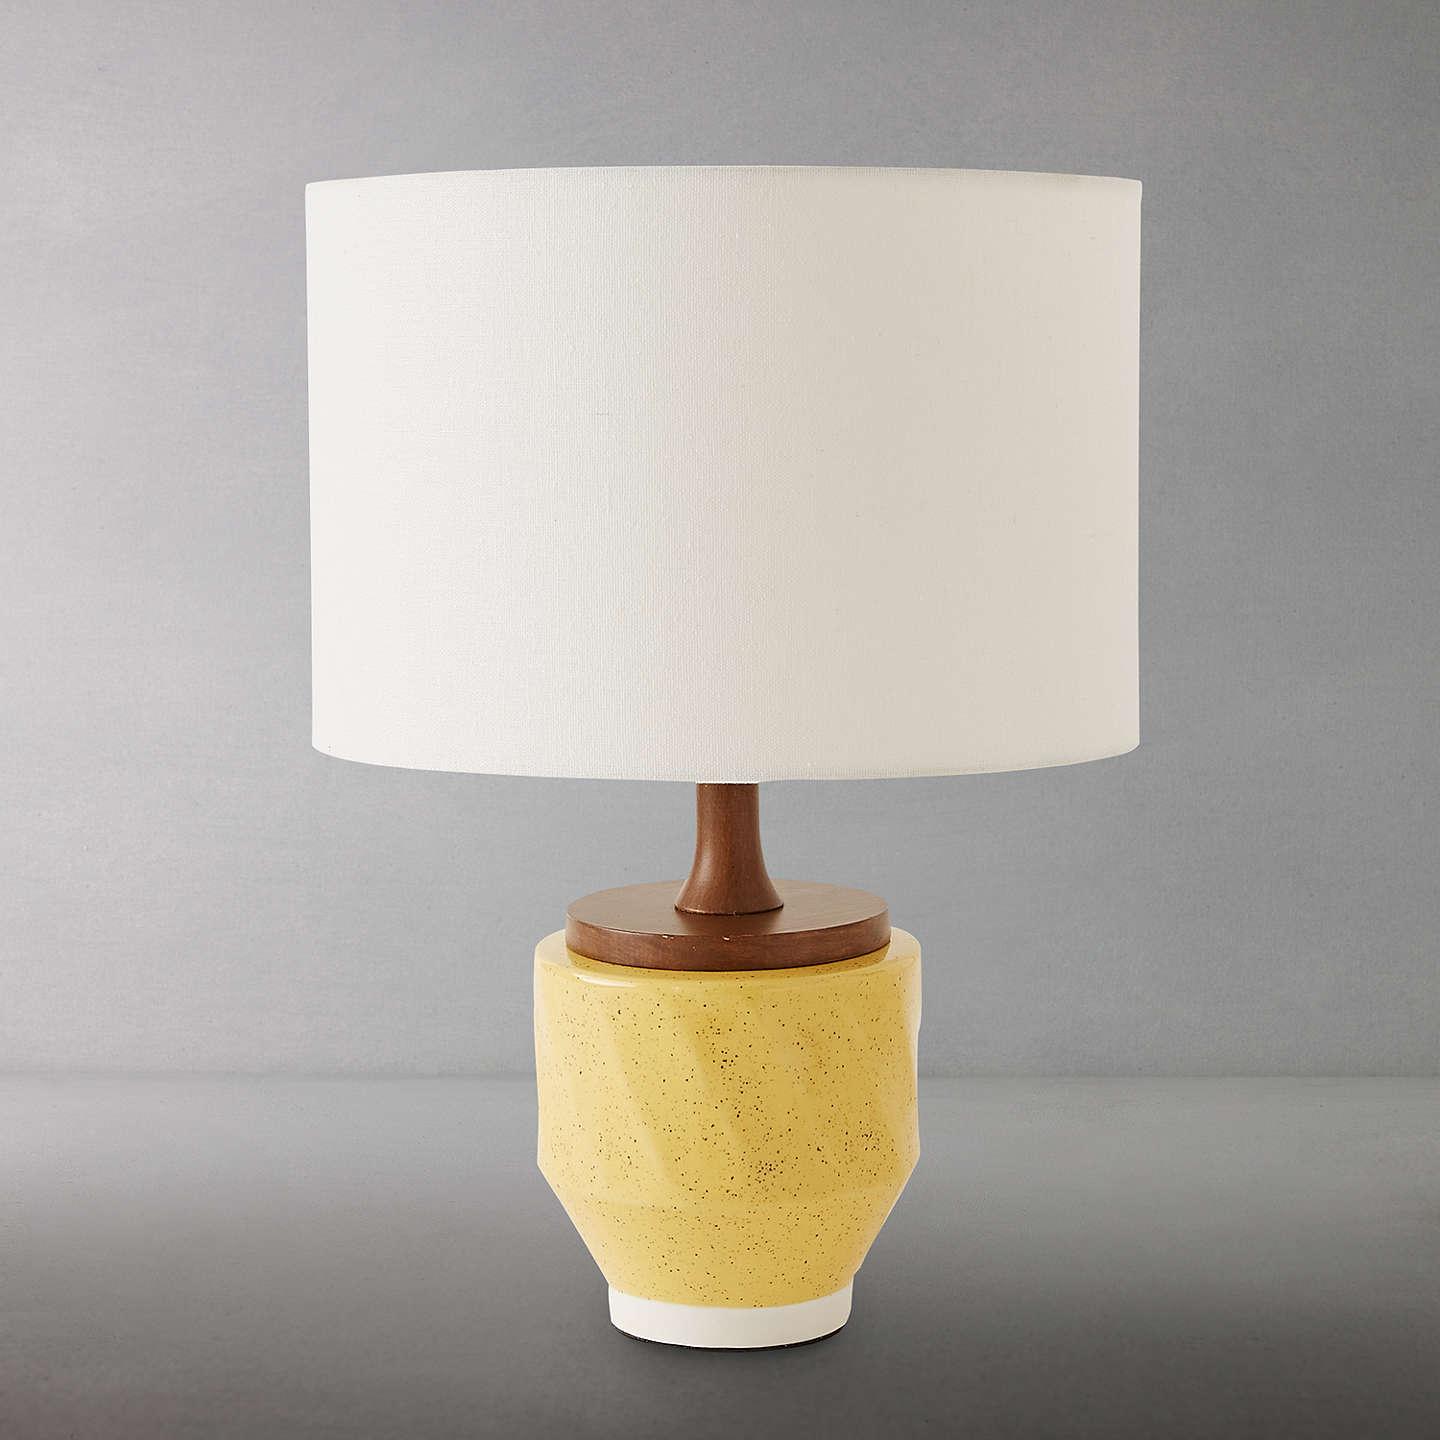 Roar rabbit for west elm ripple large ceramic table lamp yellow buyroar rabbit for west elm ripple large ceramic table lamp yellow online at johnlewis aloadofball Image collections